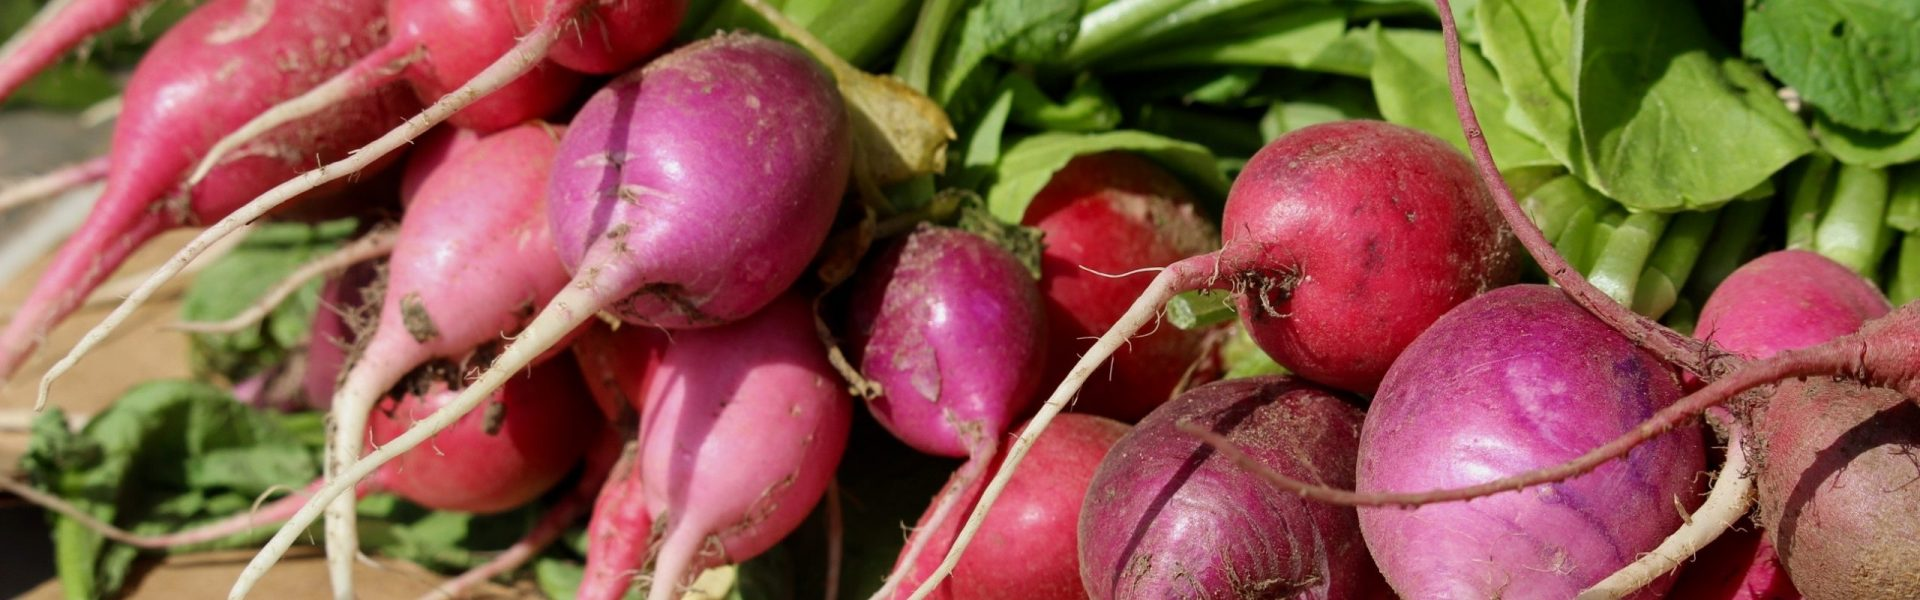 radishes on a table at a farm